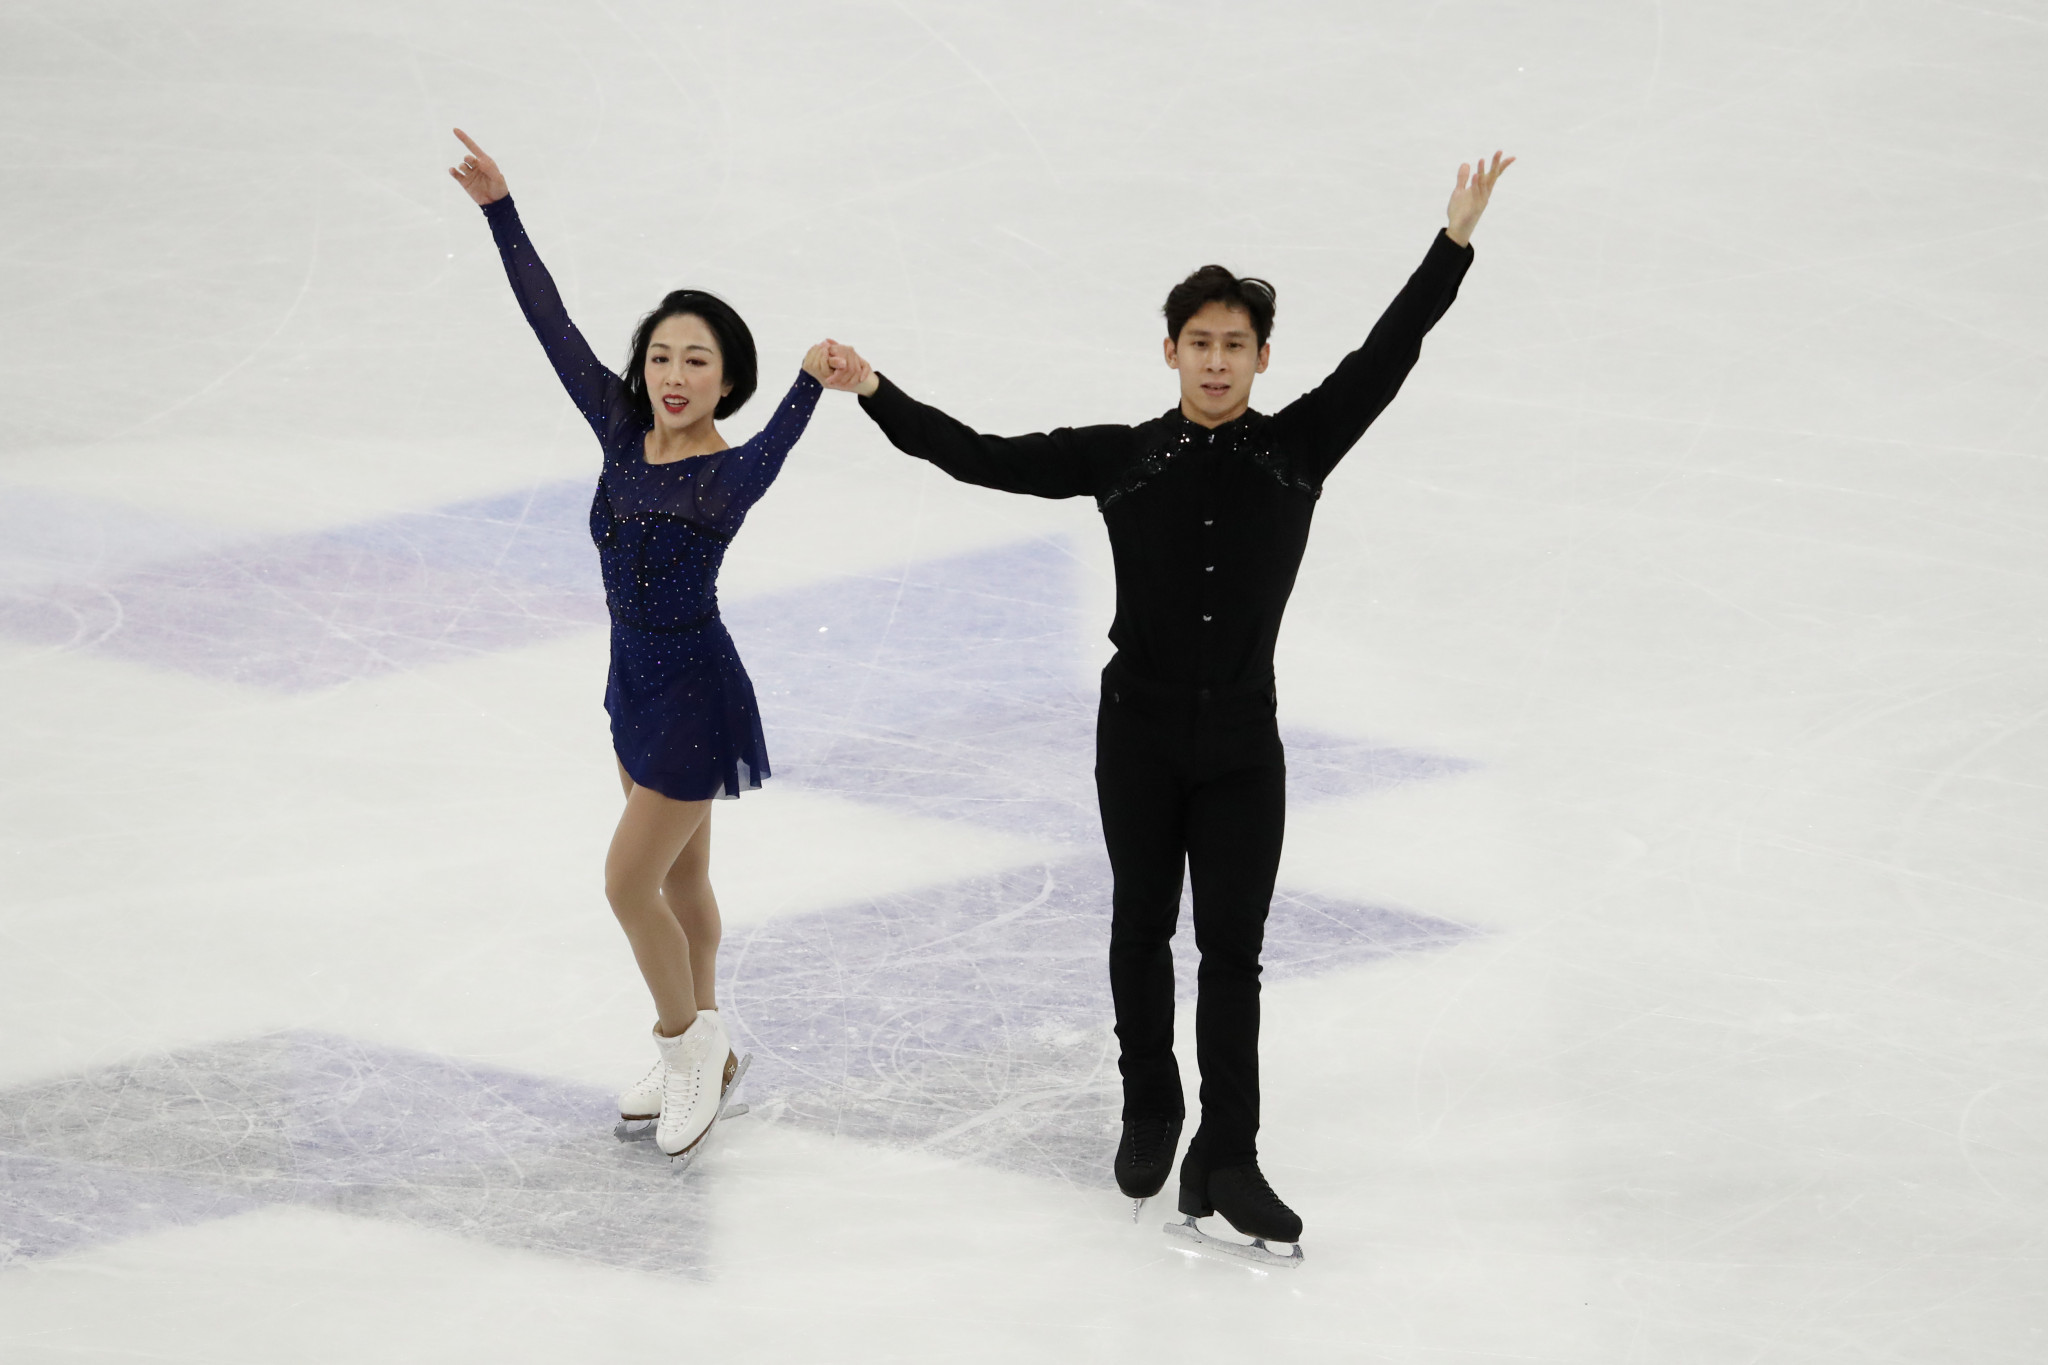 France replaces China as ISU confirms line-up for World Team Trophy in Osaka